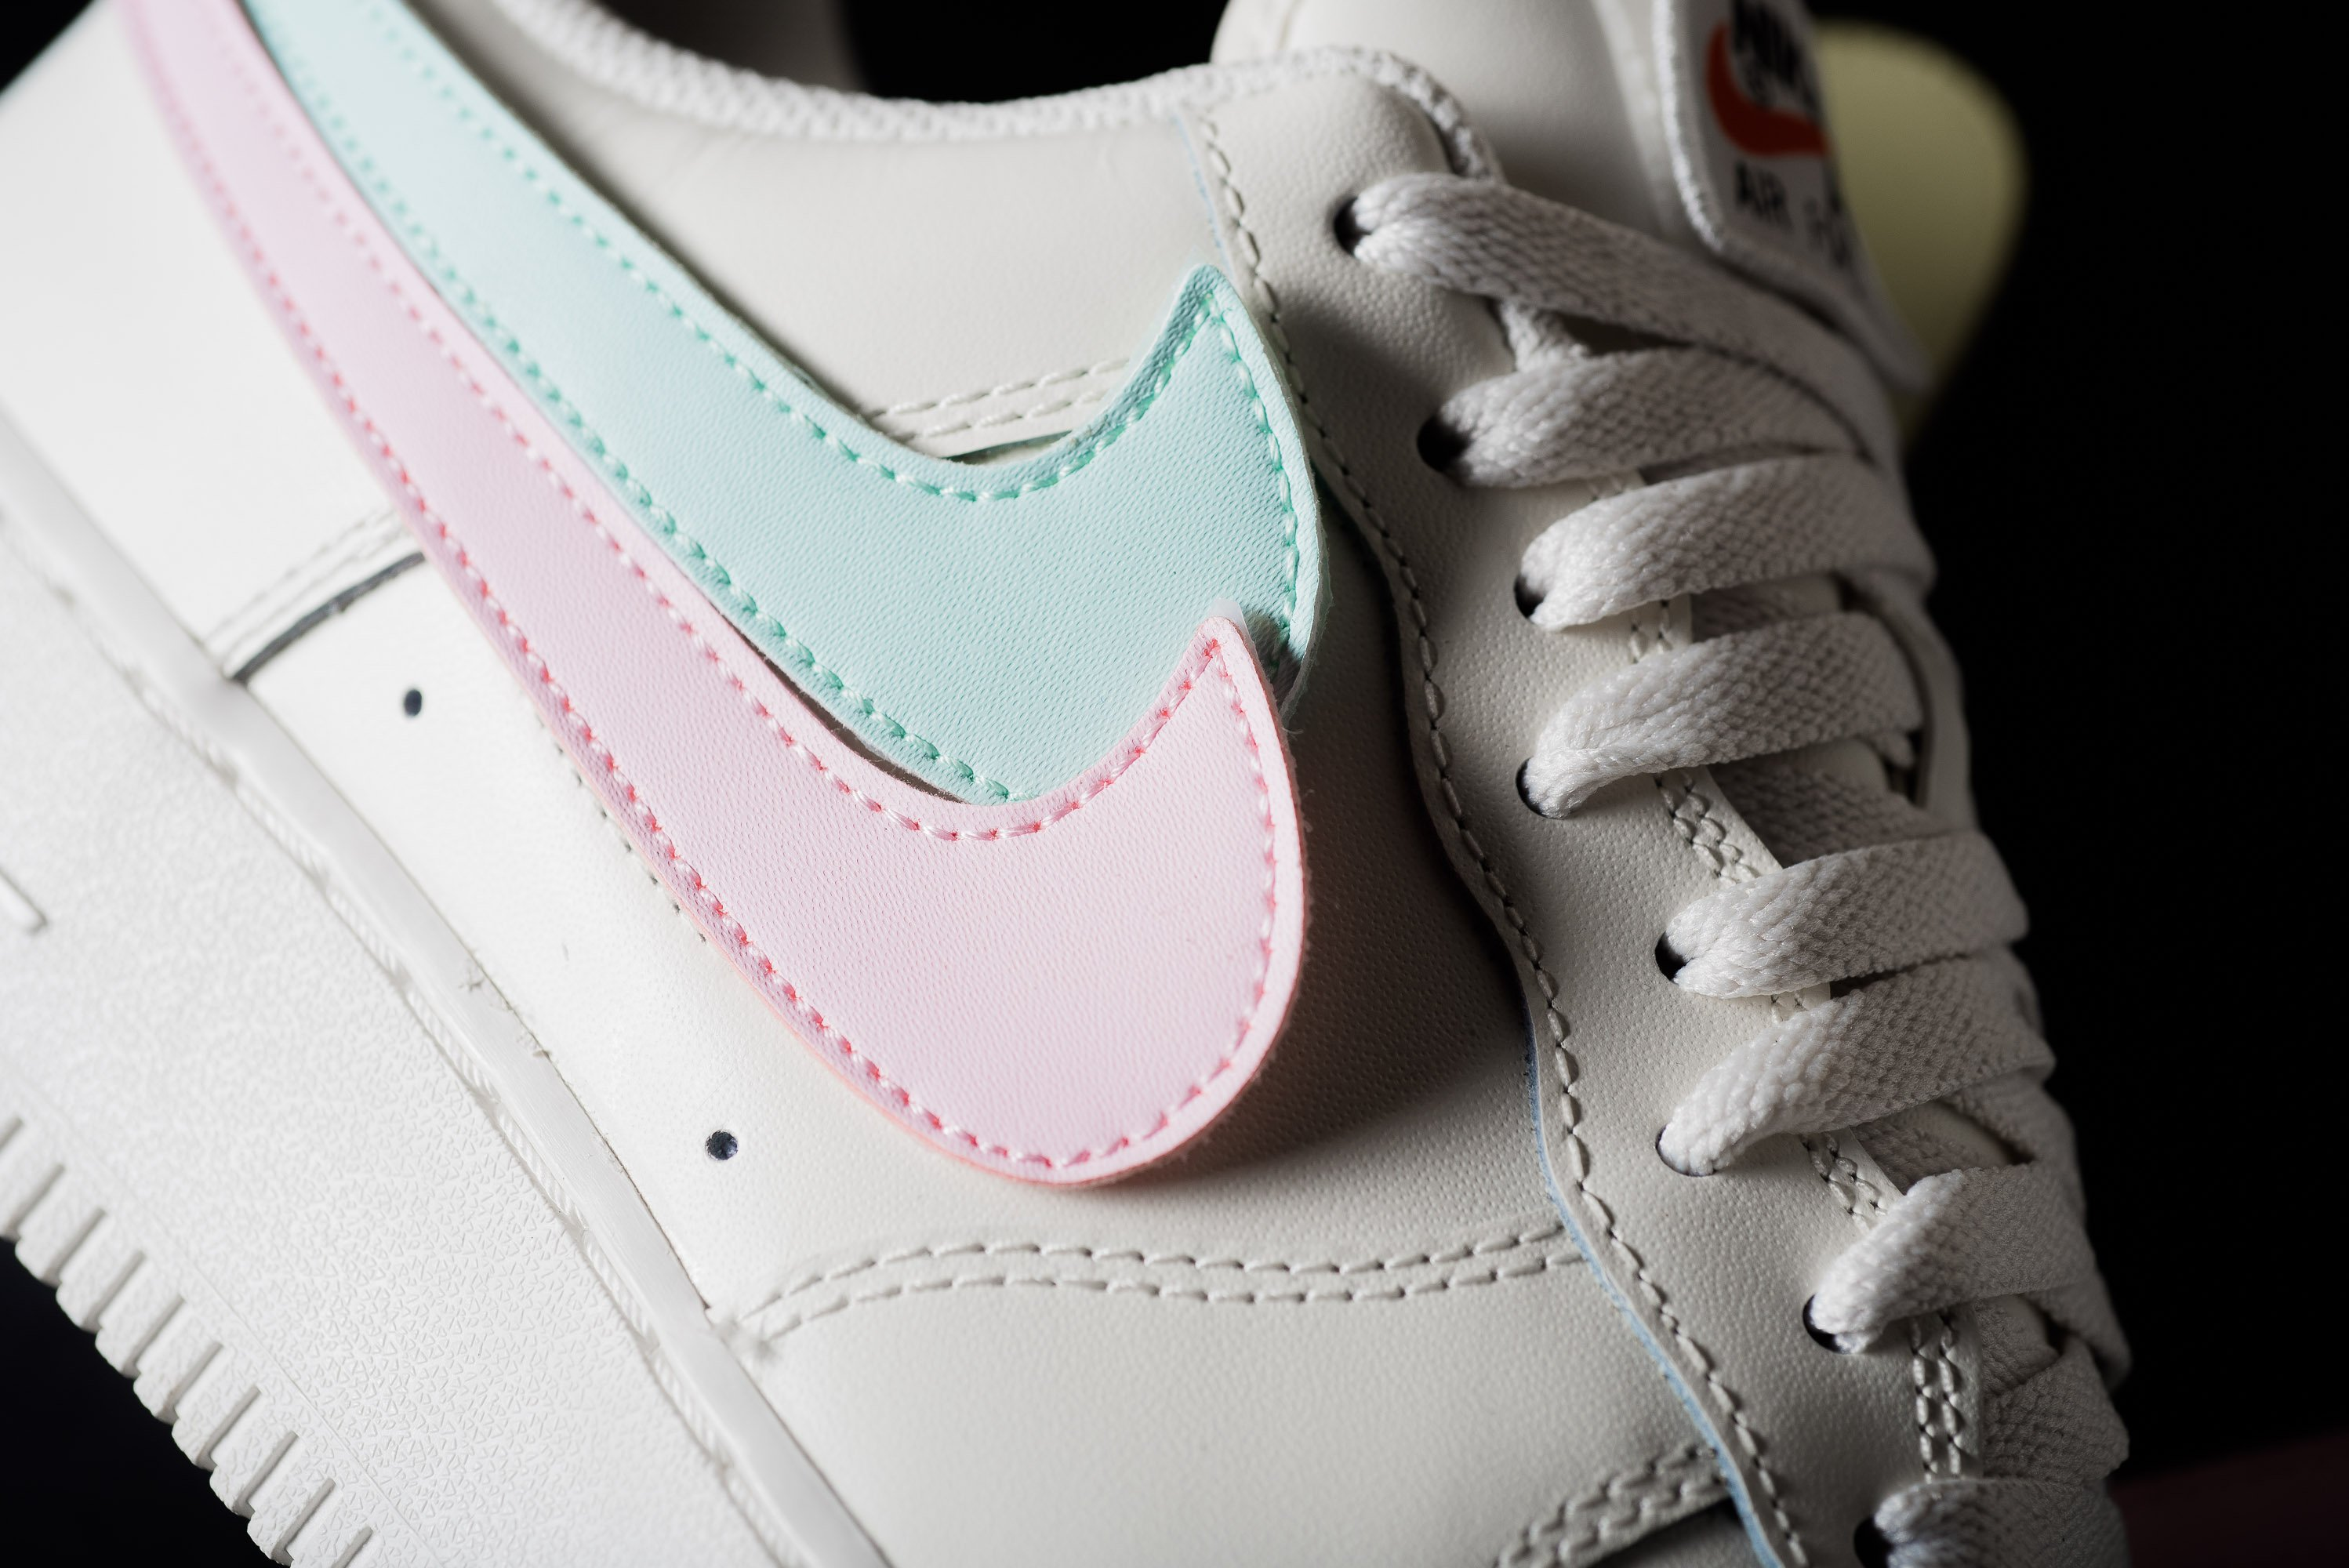 plus récent cb6fb fd15f Nike Air Force 1 07 QS Swoosh Pack - OG EUKicks Sneaker Magazine